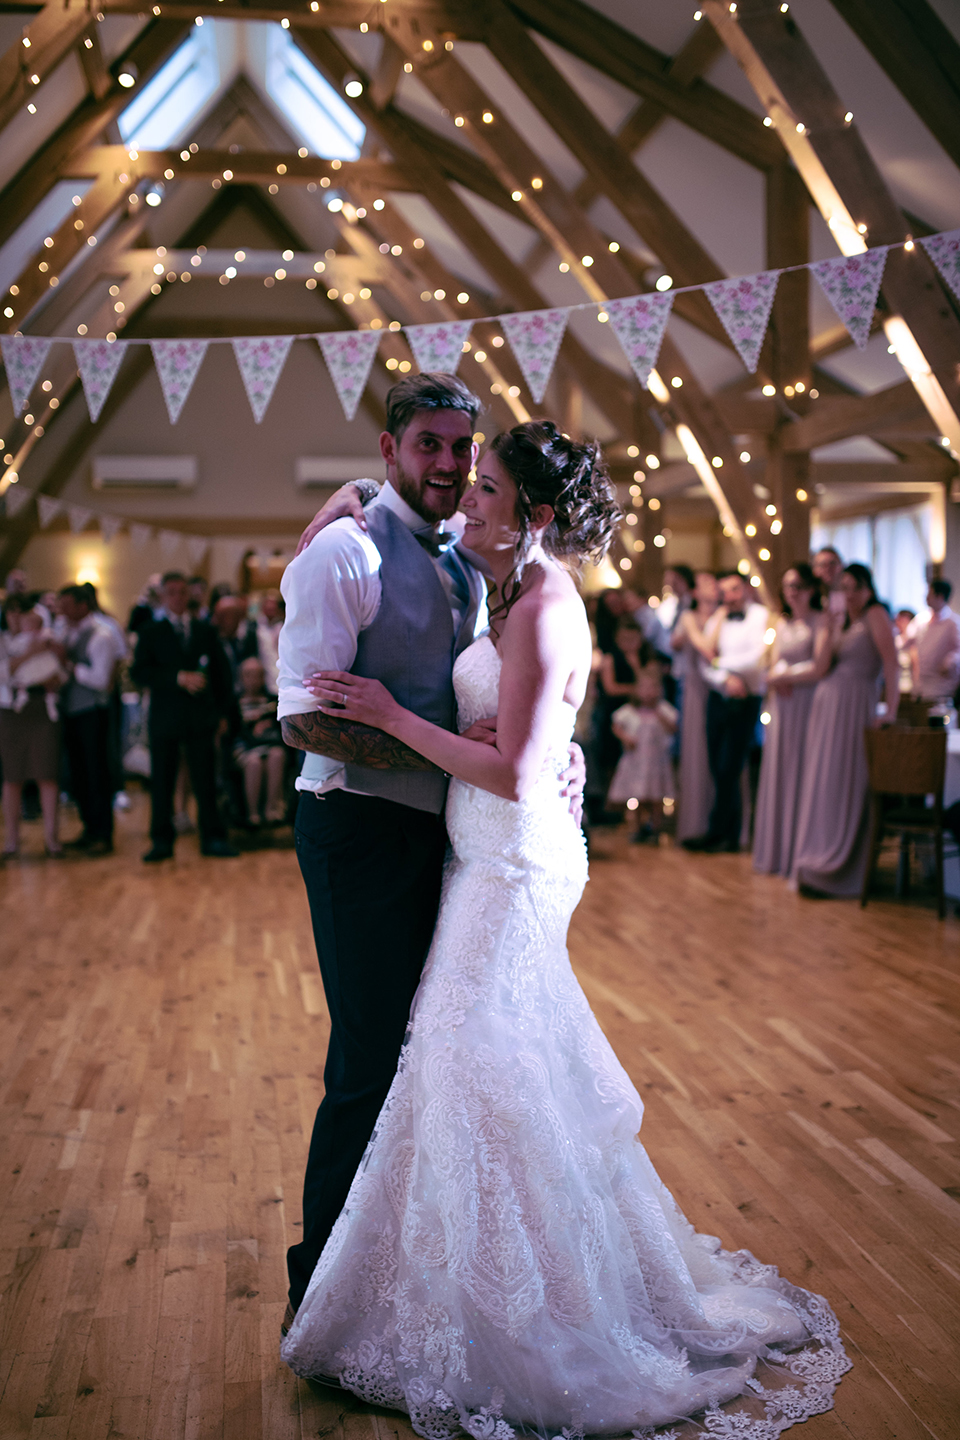 The bride and groom perform their first dance in front of guests at Bassmead Manor Barns